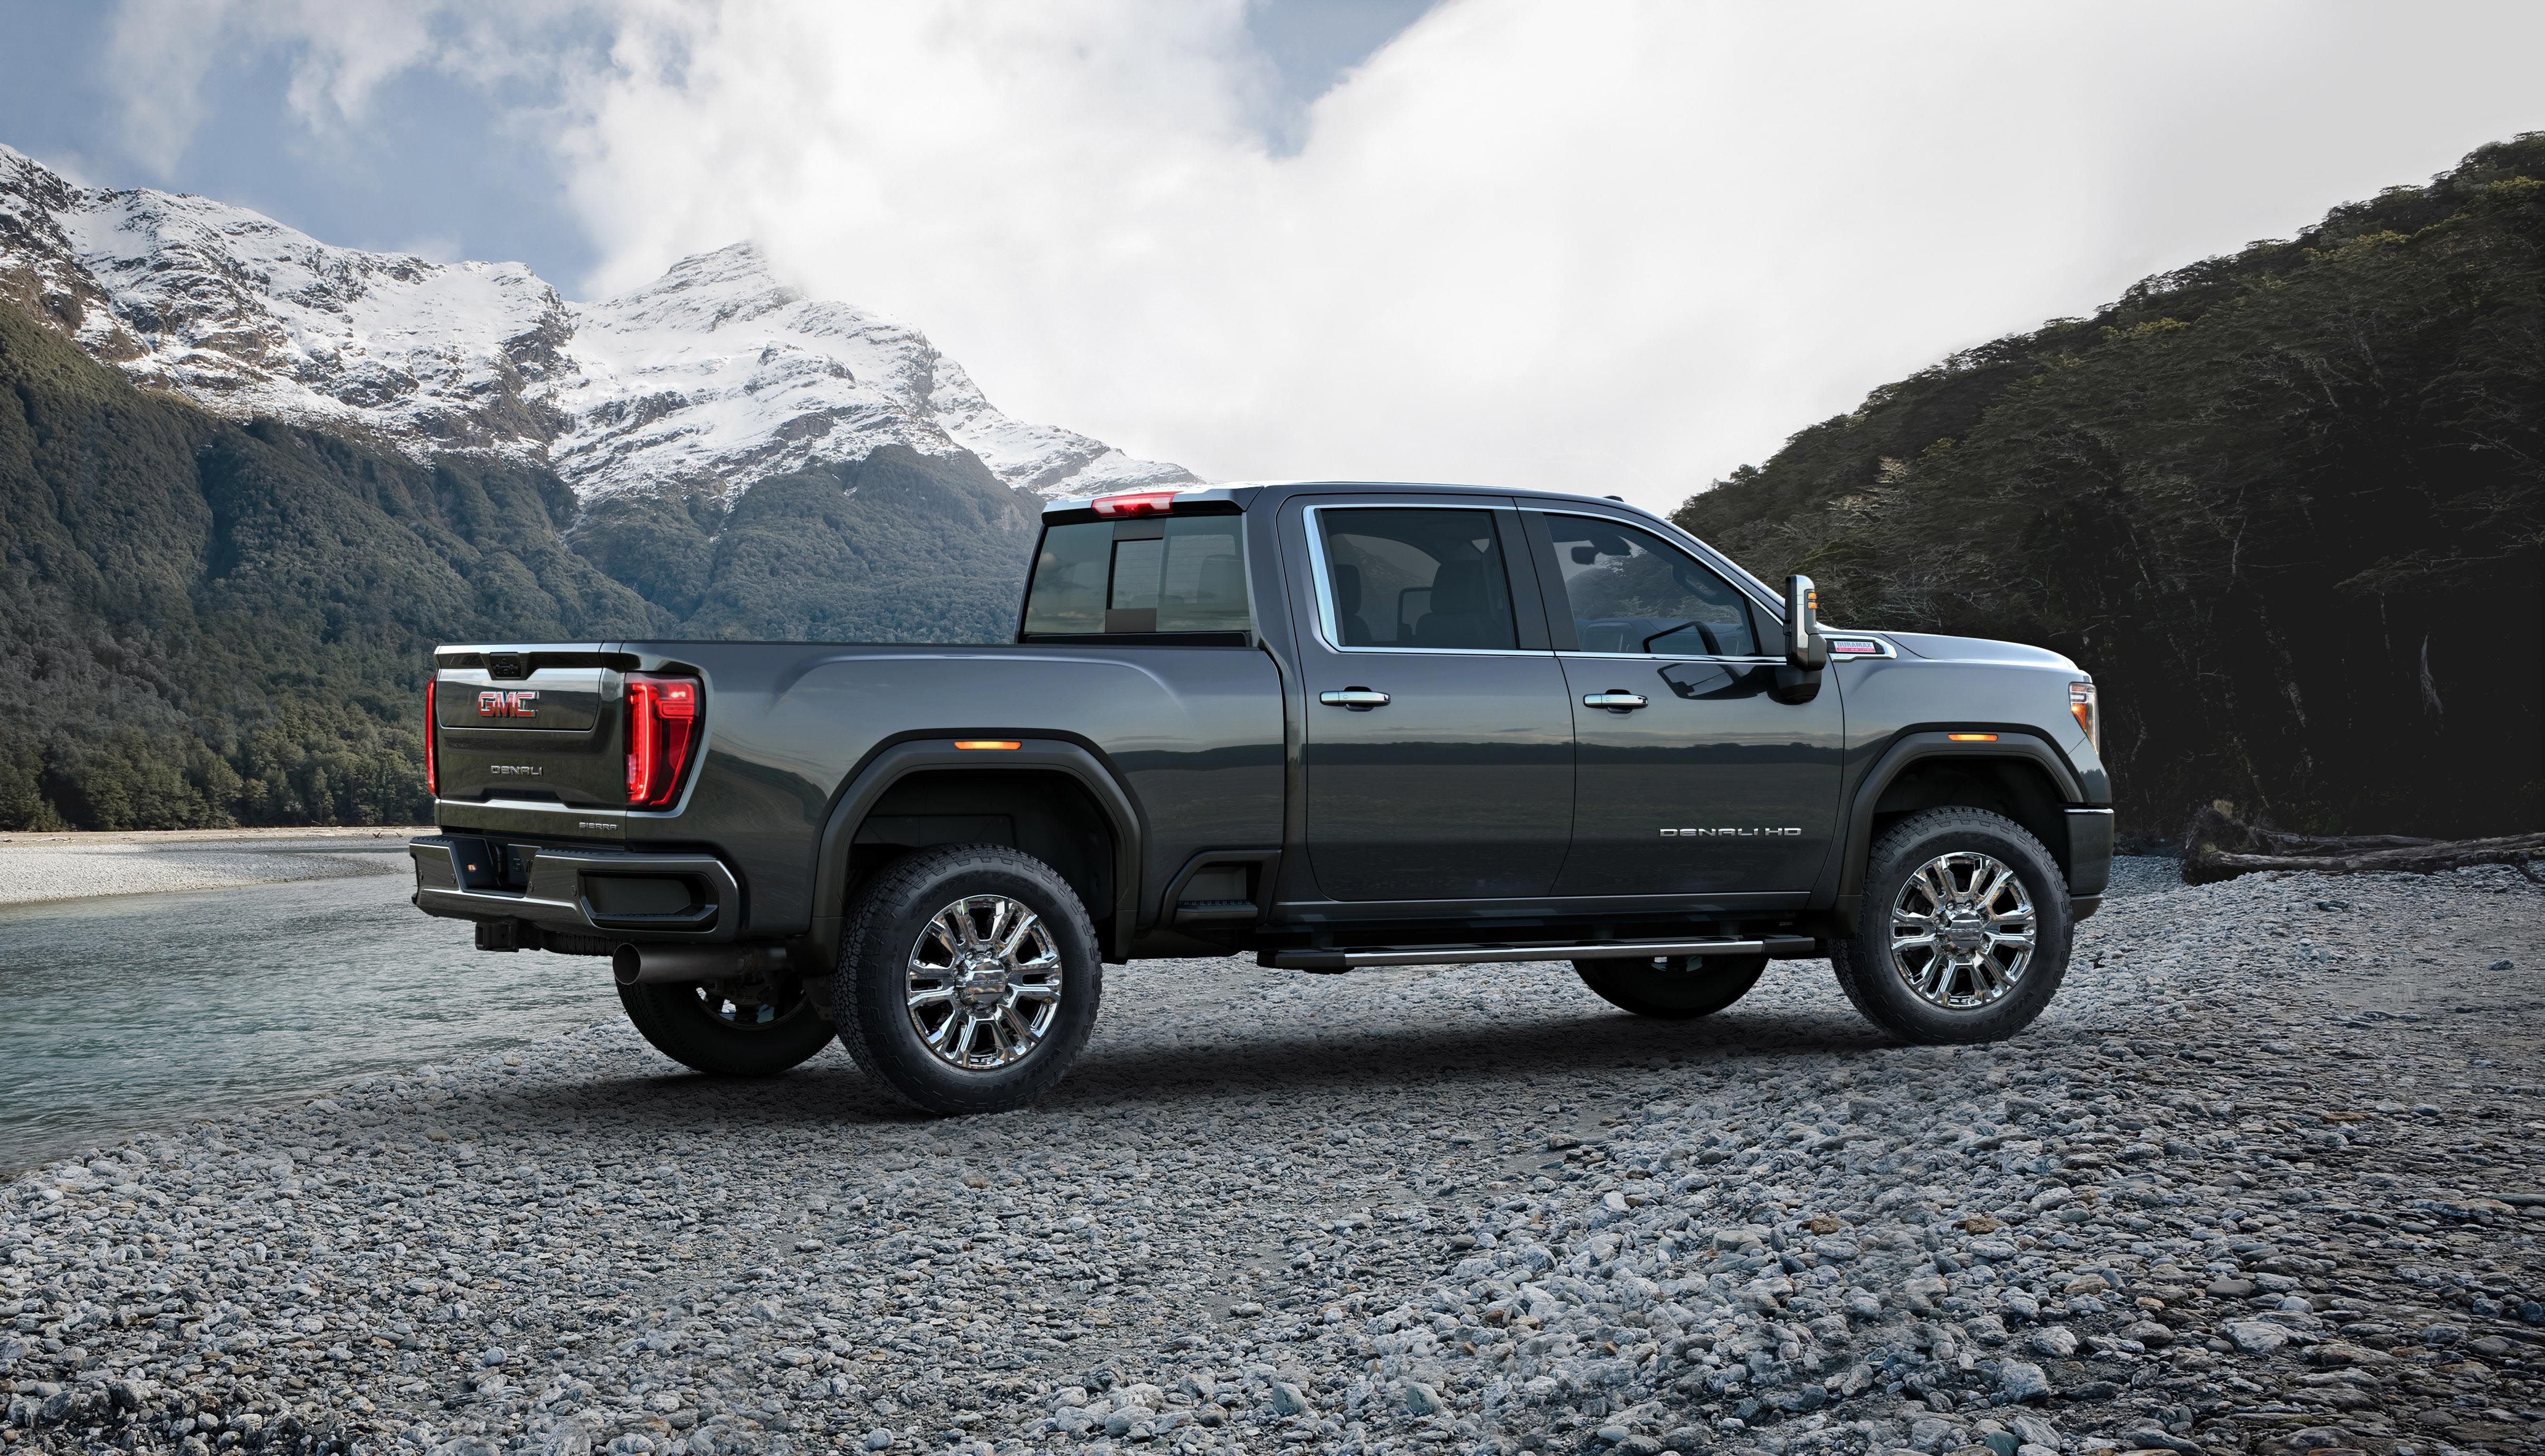 2020 Gmc Sierra Hd Pickup New Heavy Duty Truck With A Denali Model